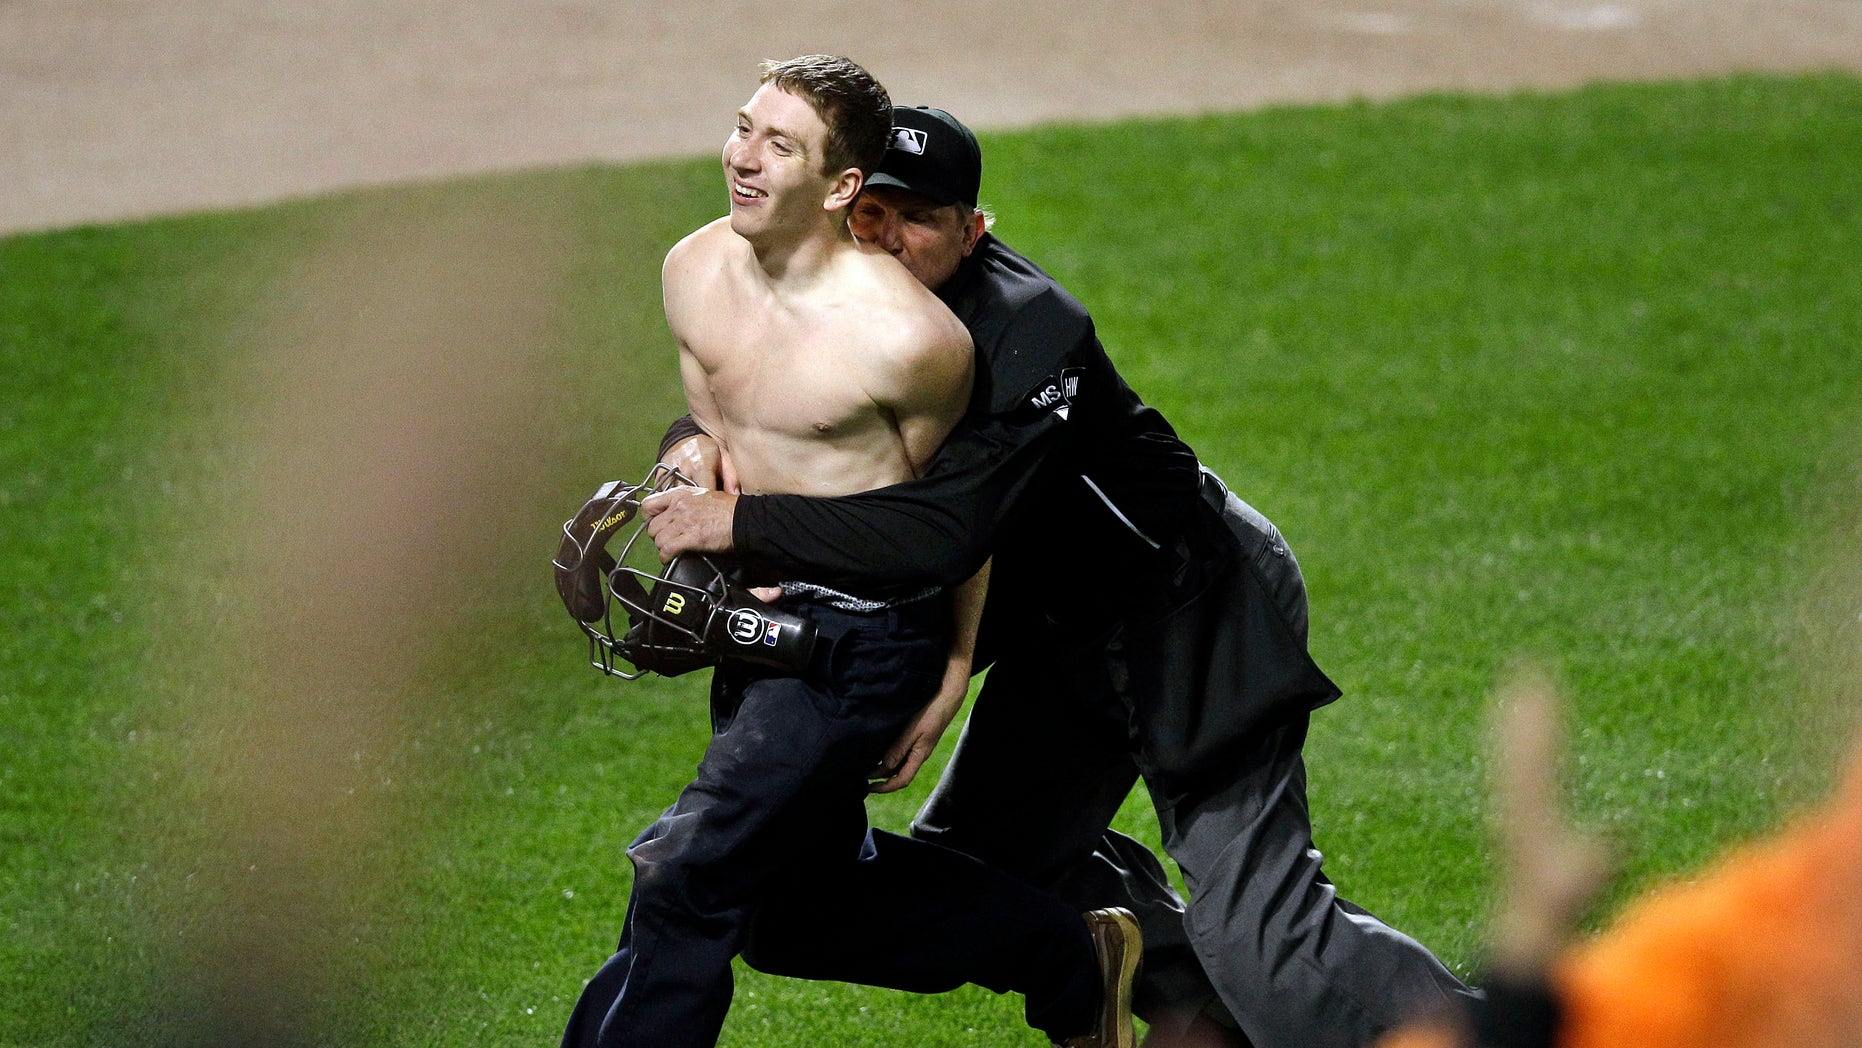 Umpire Jeff Kellogg, right, tackles a fan who ran onto the field in the middle of the seventh inning of a baseball game between the Oakland Athletics and the Baltimore Orioles in Baltimore, Friday, April 27, 2012. (AP Photo/Patrick Semansky)